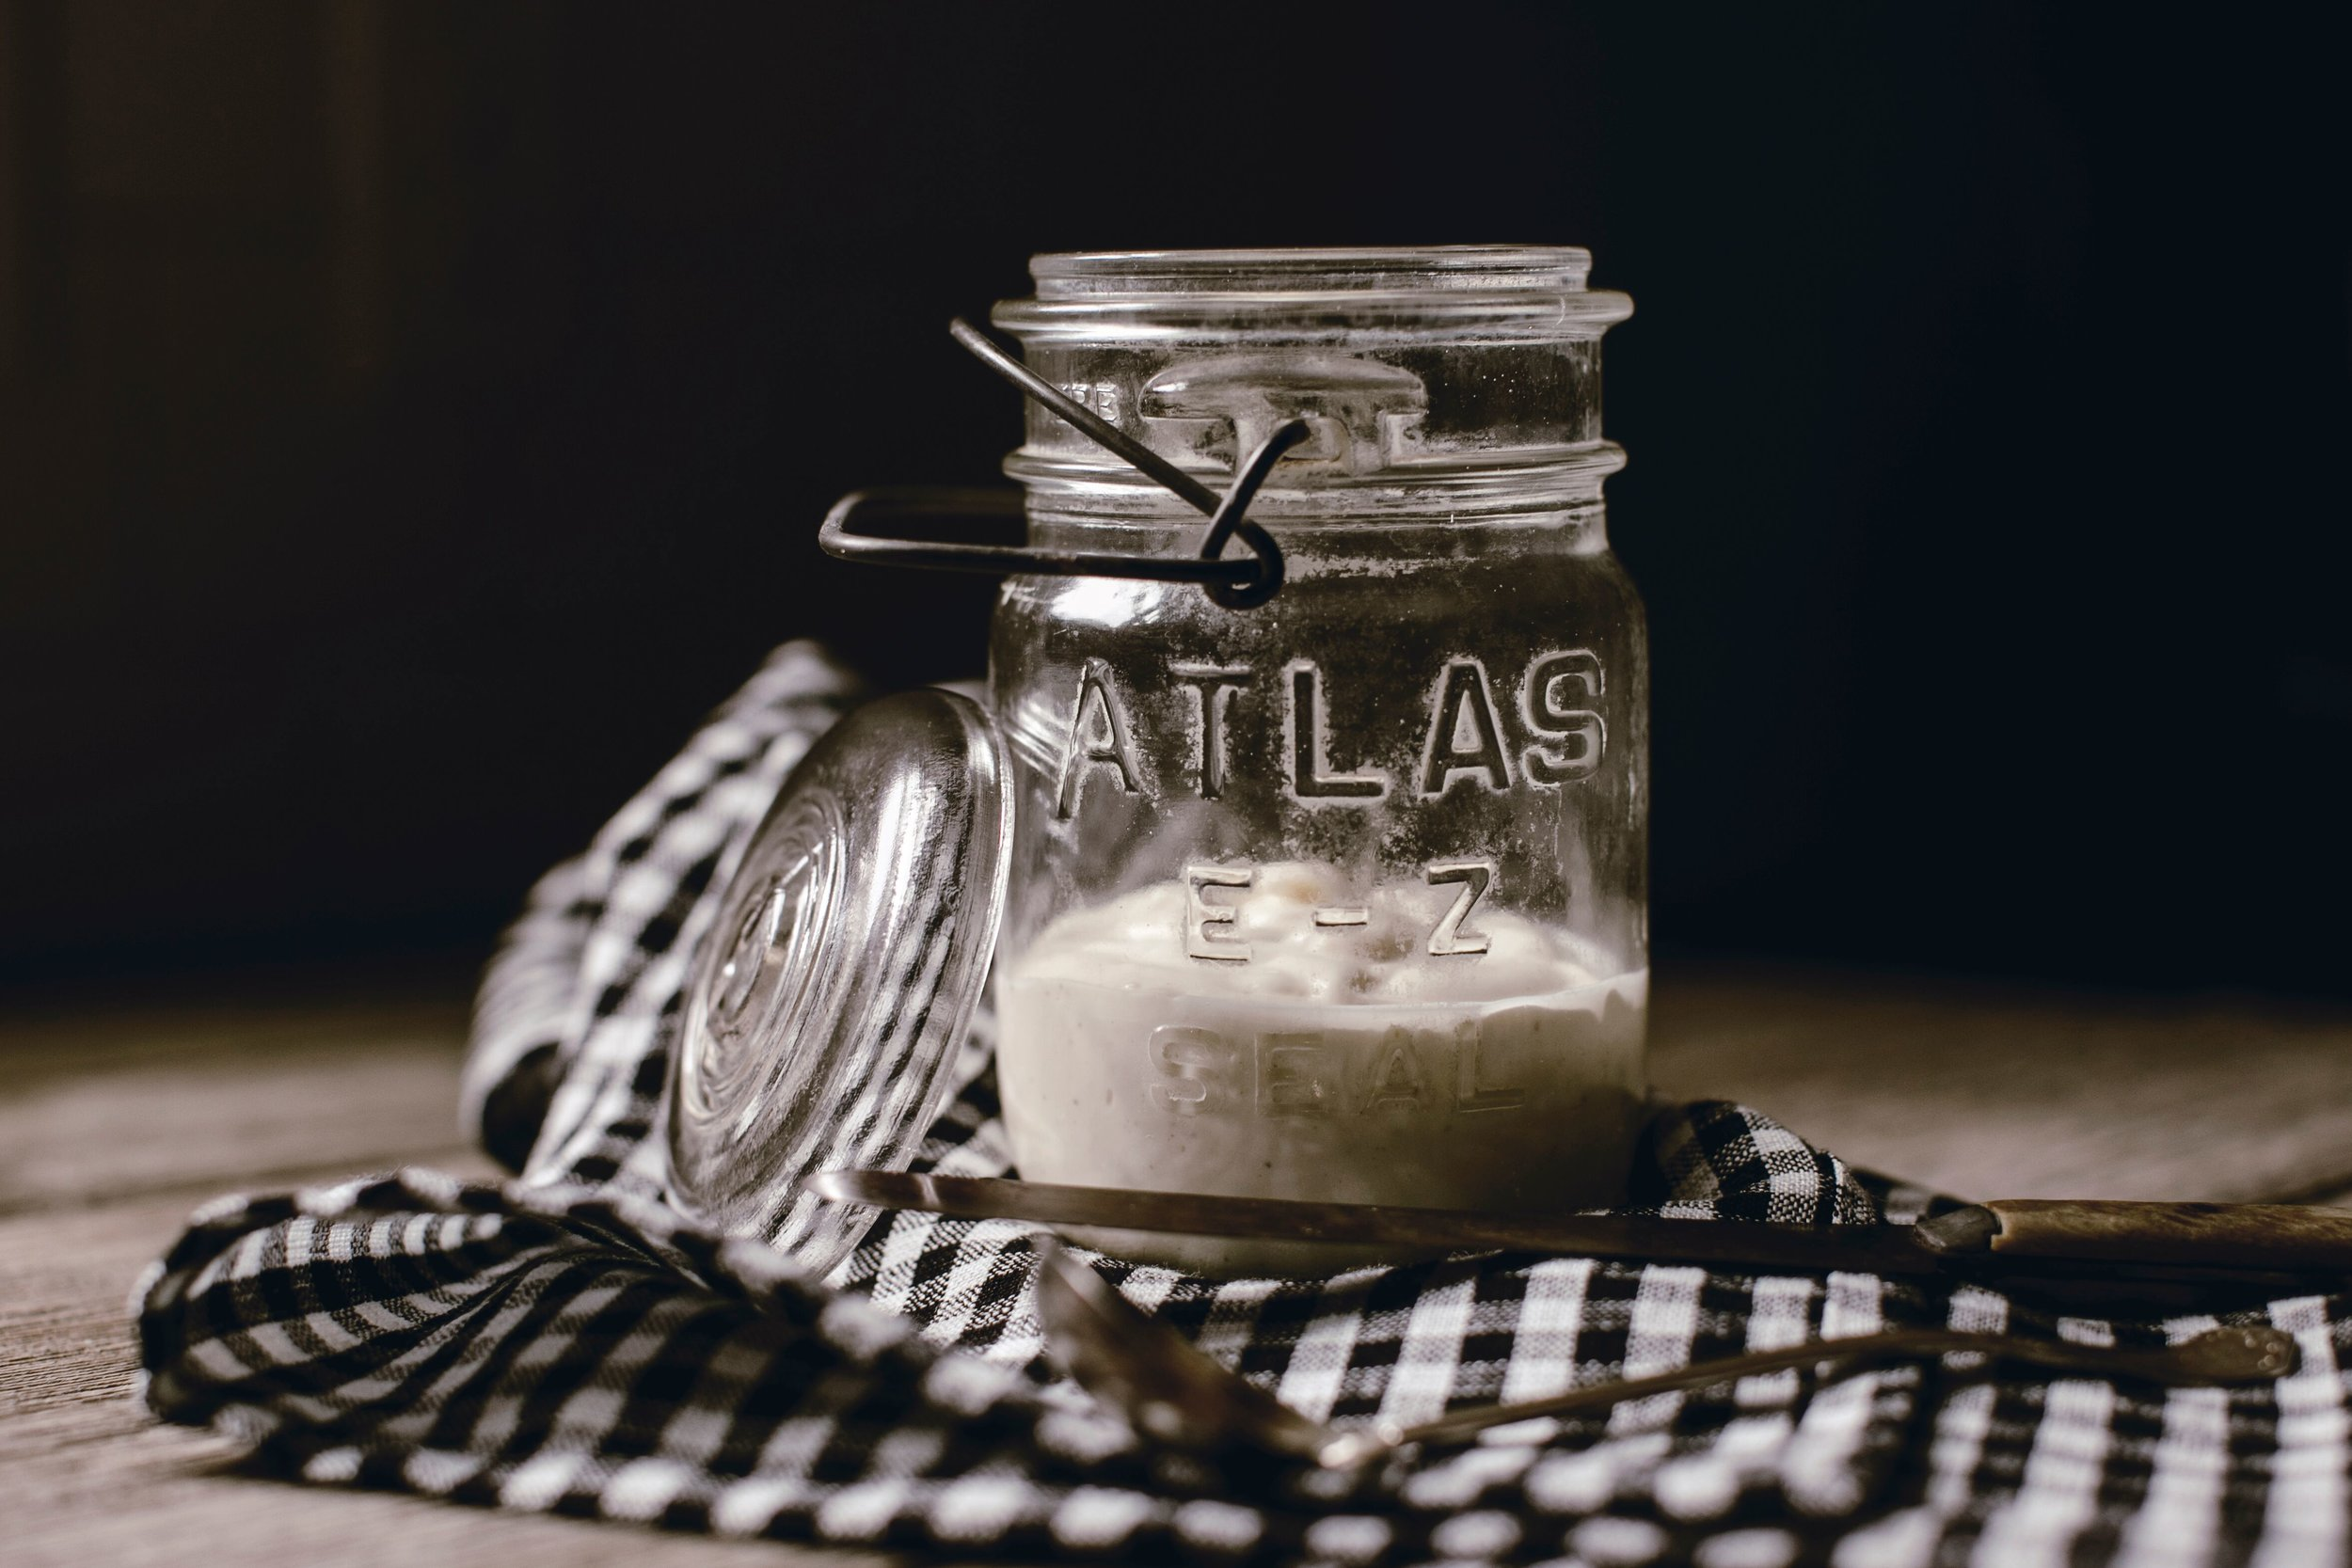 Alabama White Sauce by heirloomed